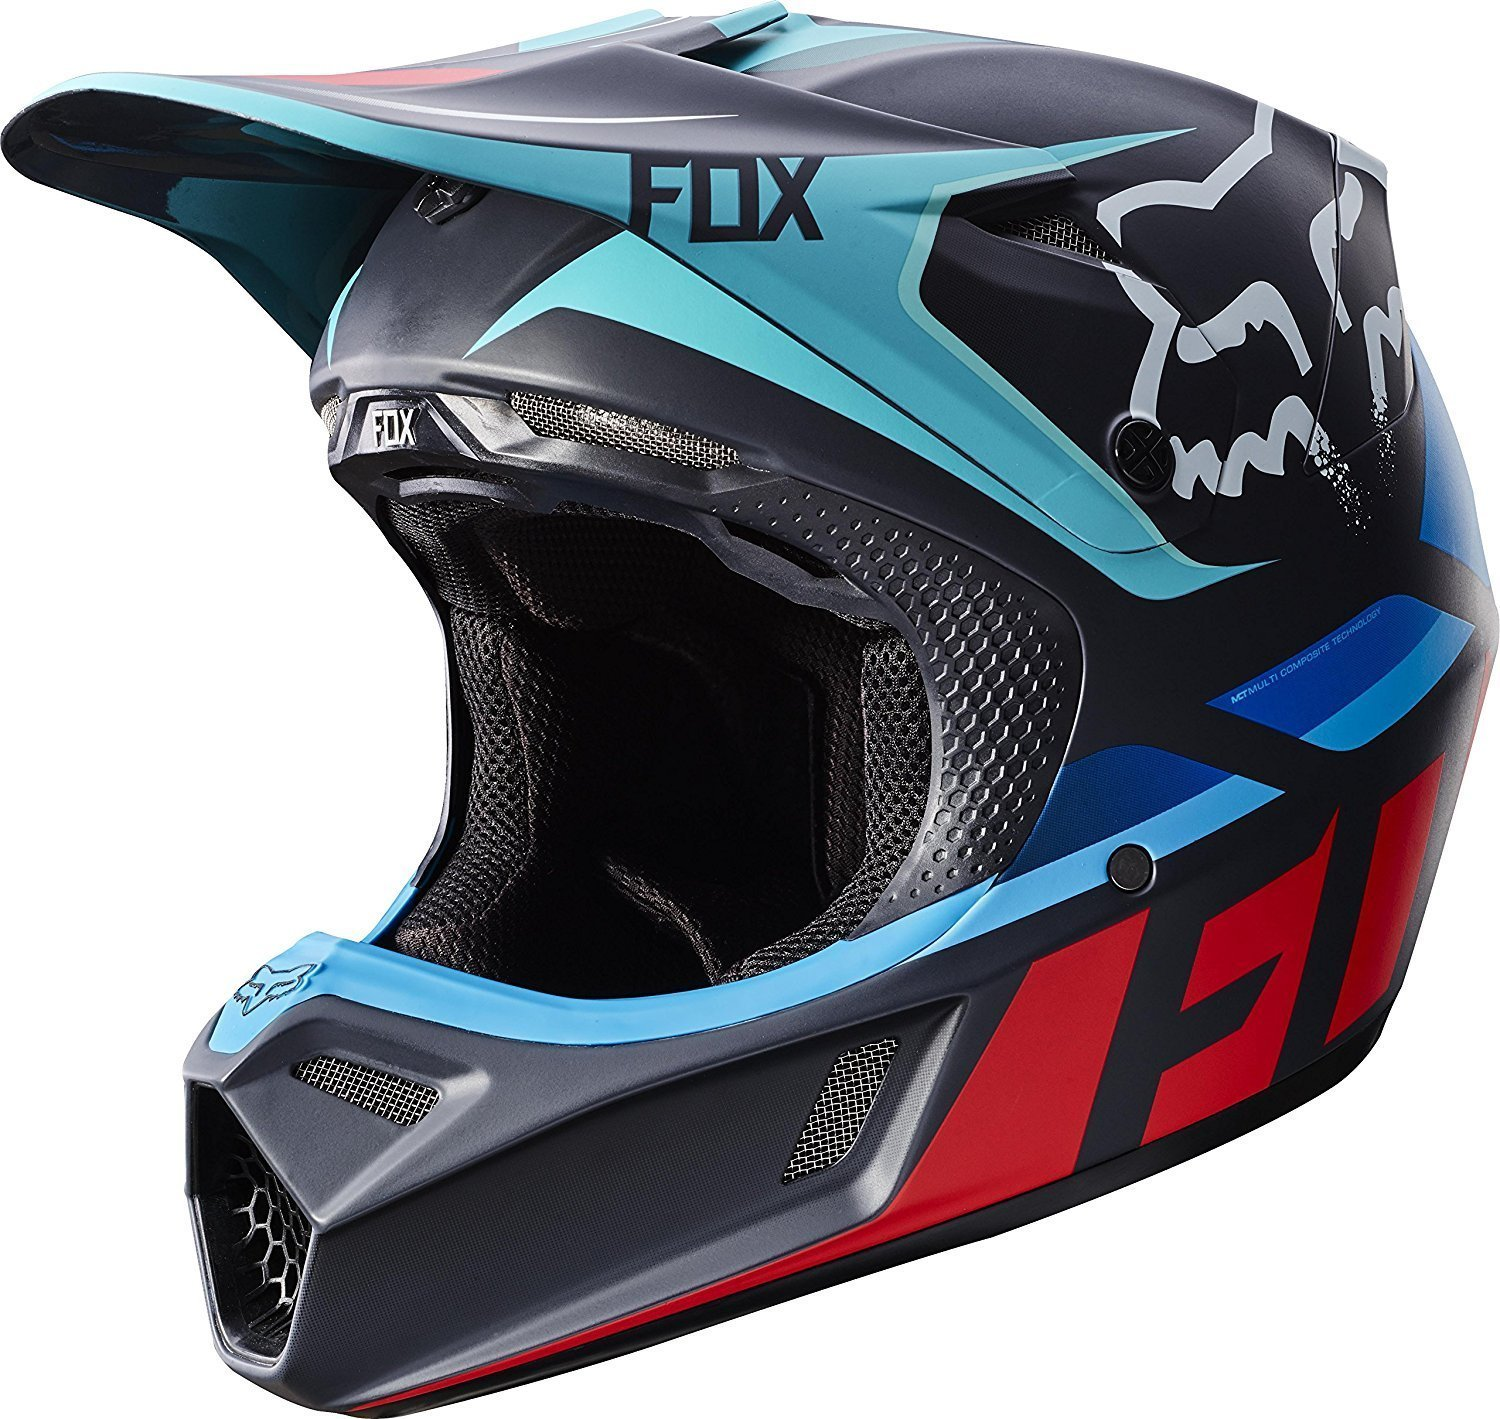 Dirt Bike Helmets 2017 Top 5 The Ultimate Guide Motocross Advice